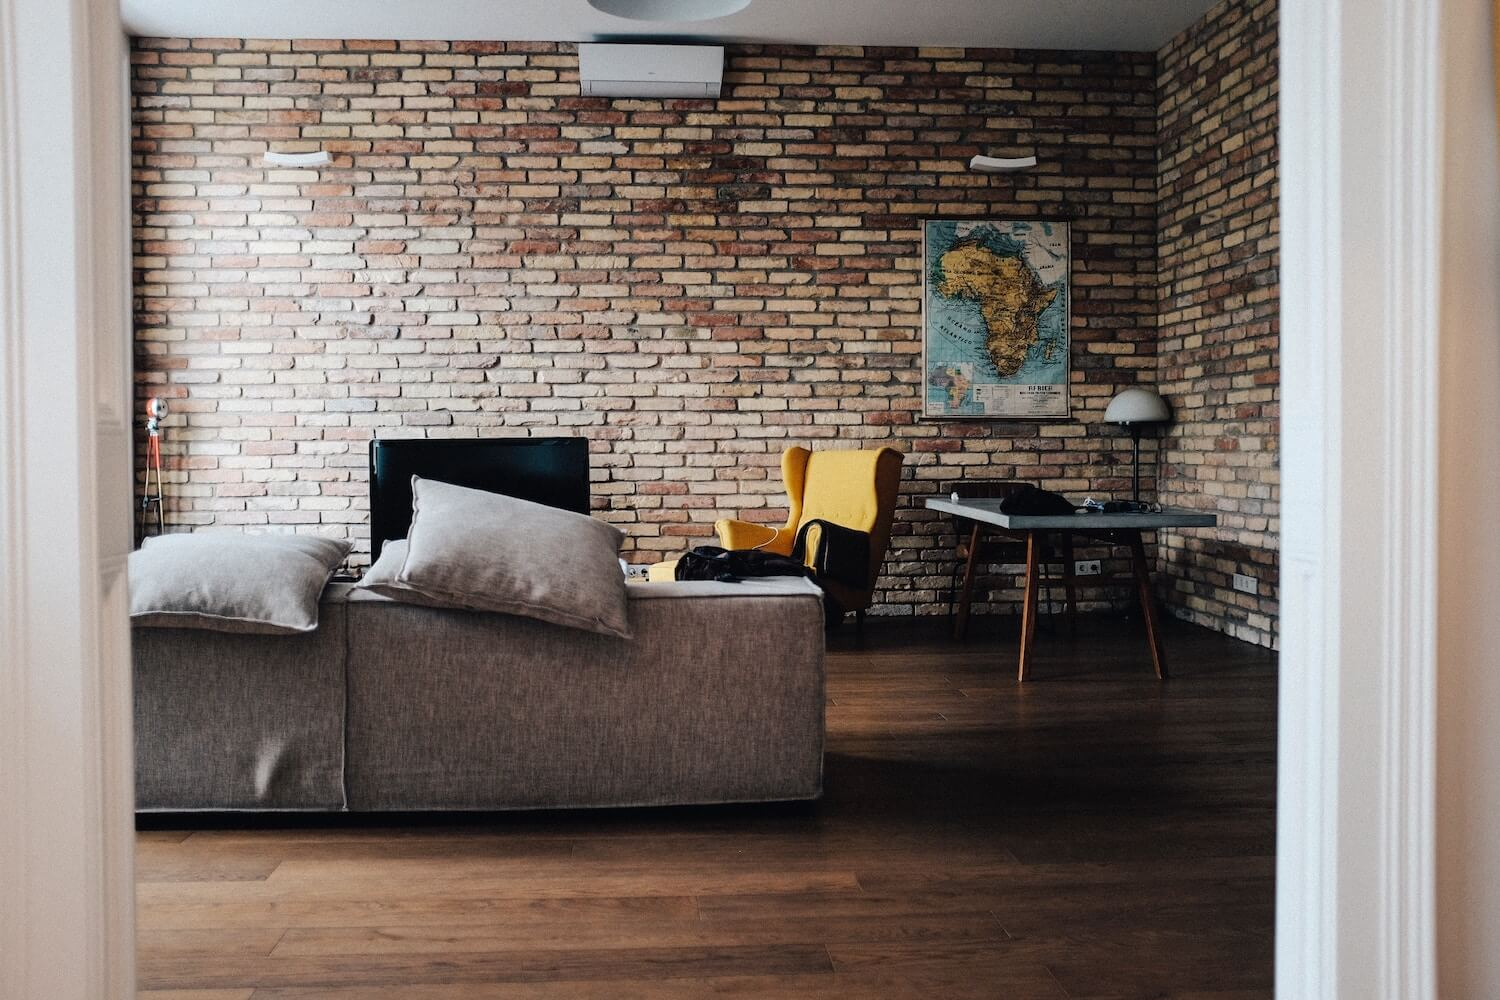 With Bad Credit You May be Unable to Rent an Apartment | One